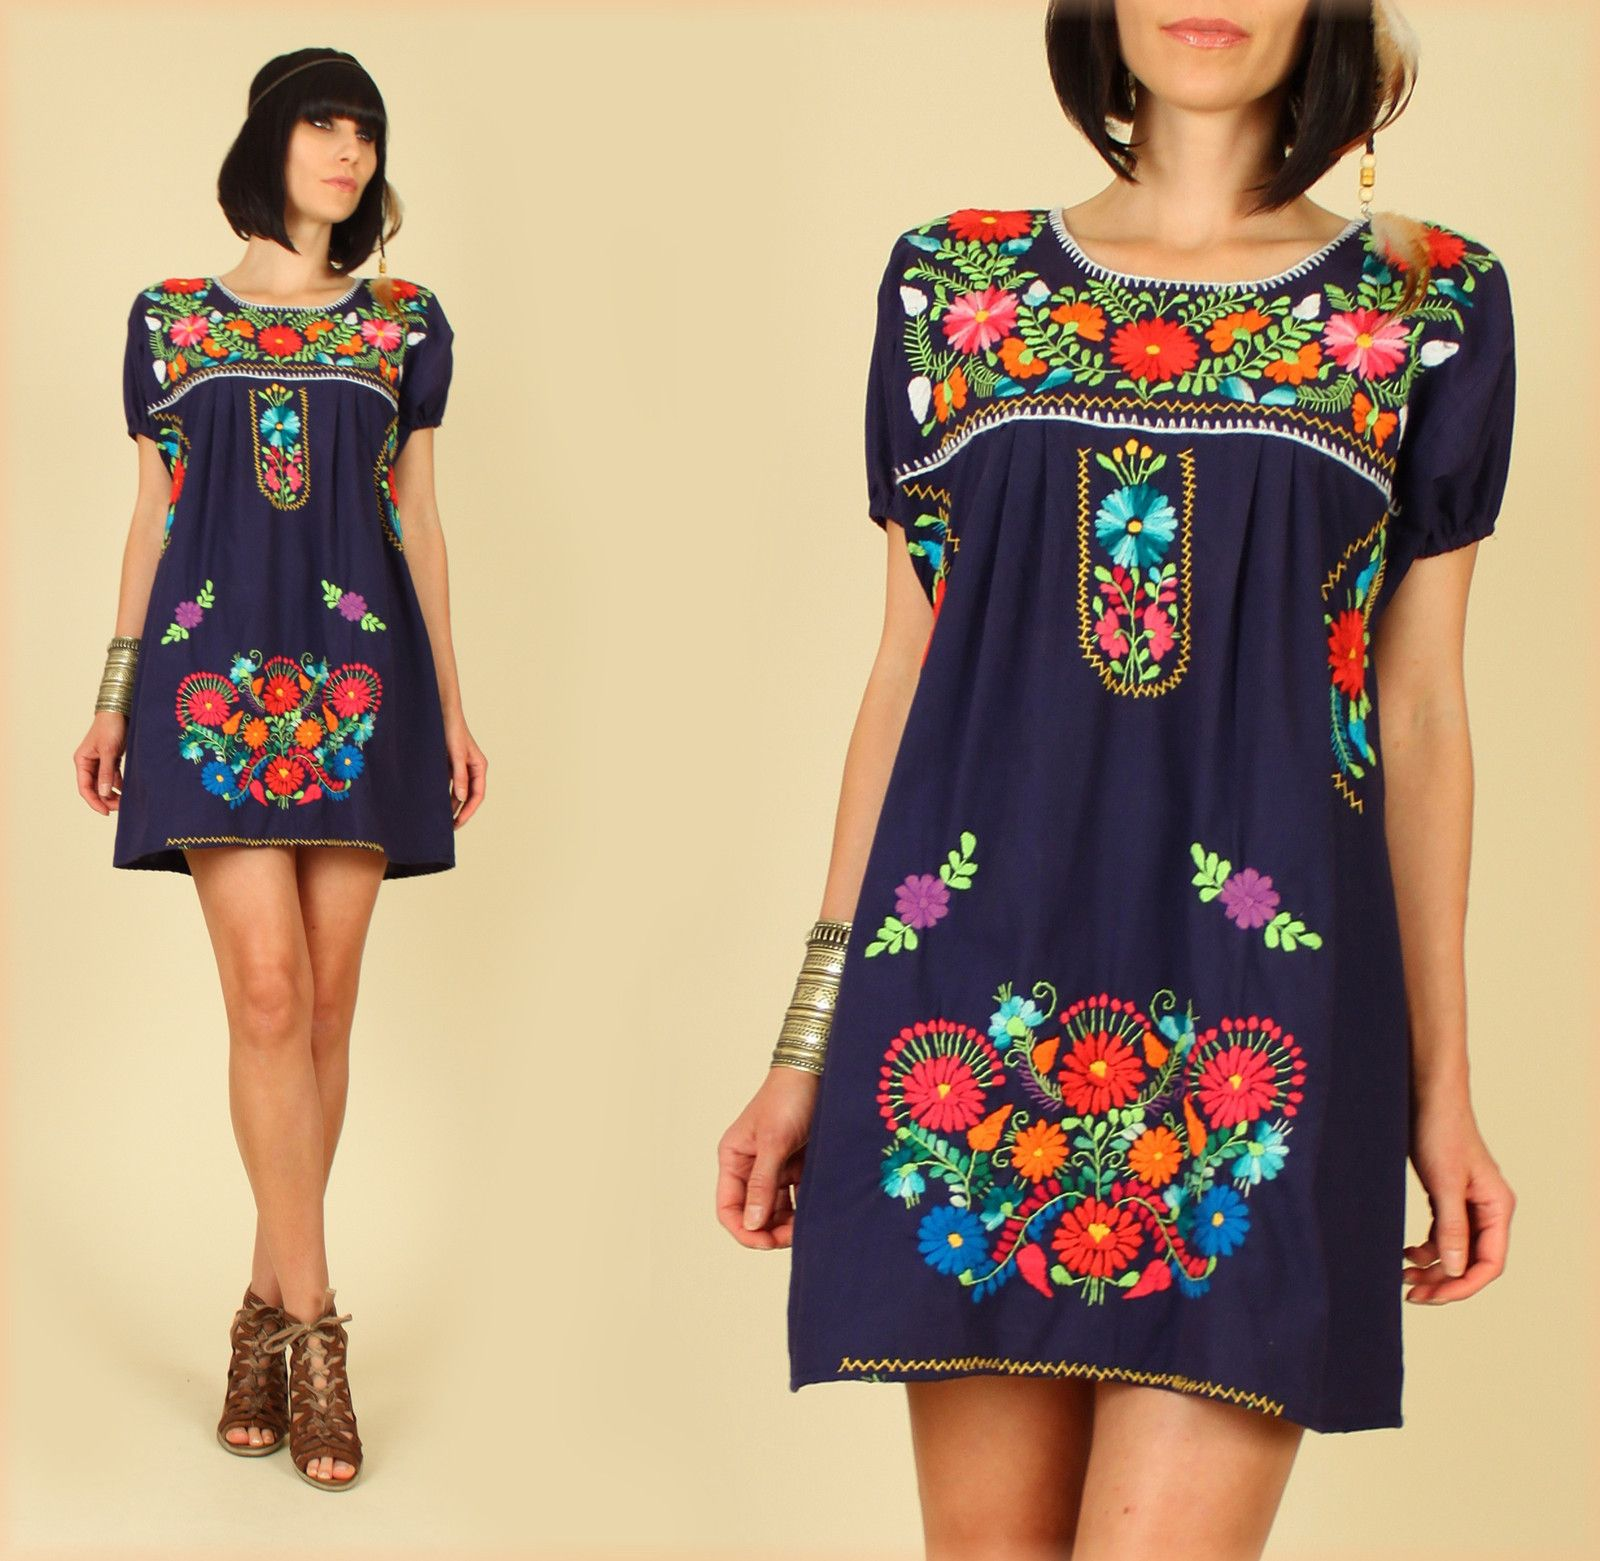 4f86b0a13ae0 Mouse over image to zoom Sell one like this ViNtAgE 70 s Blue Mexican  Floral Embroidered MiNi Dress HiPPiE BoHo